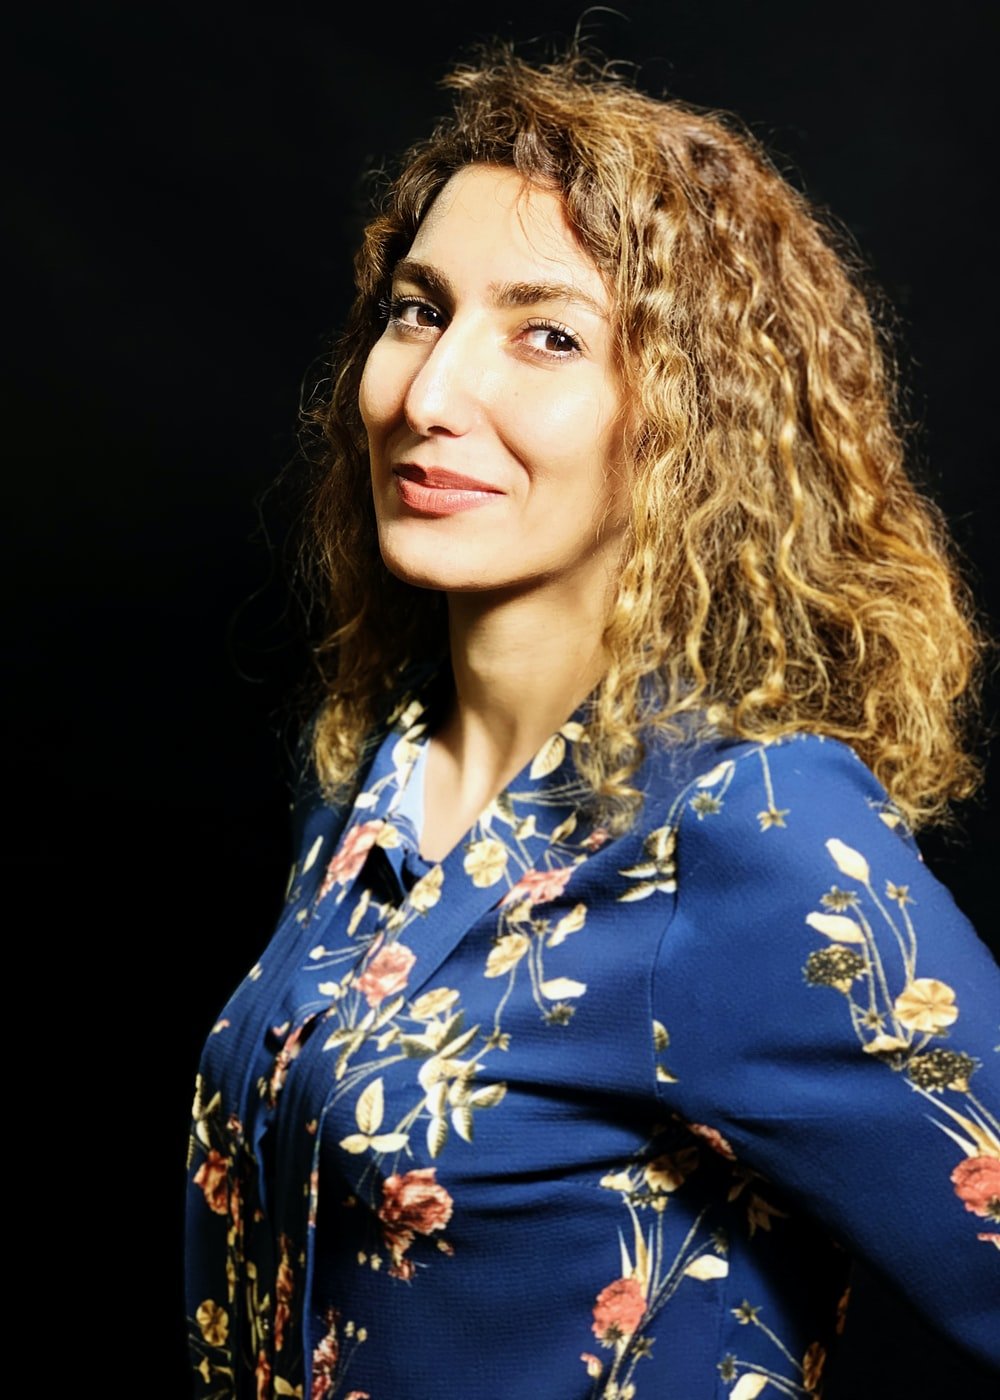 woman in blue white and red floral button up shirt